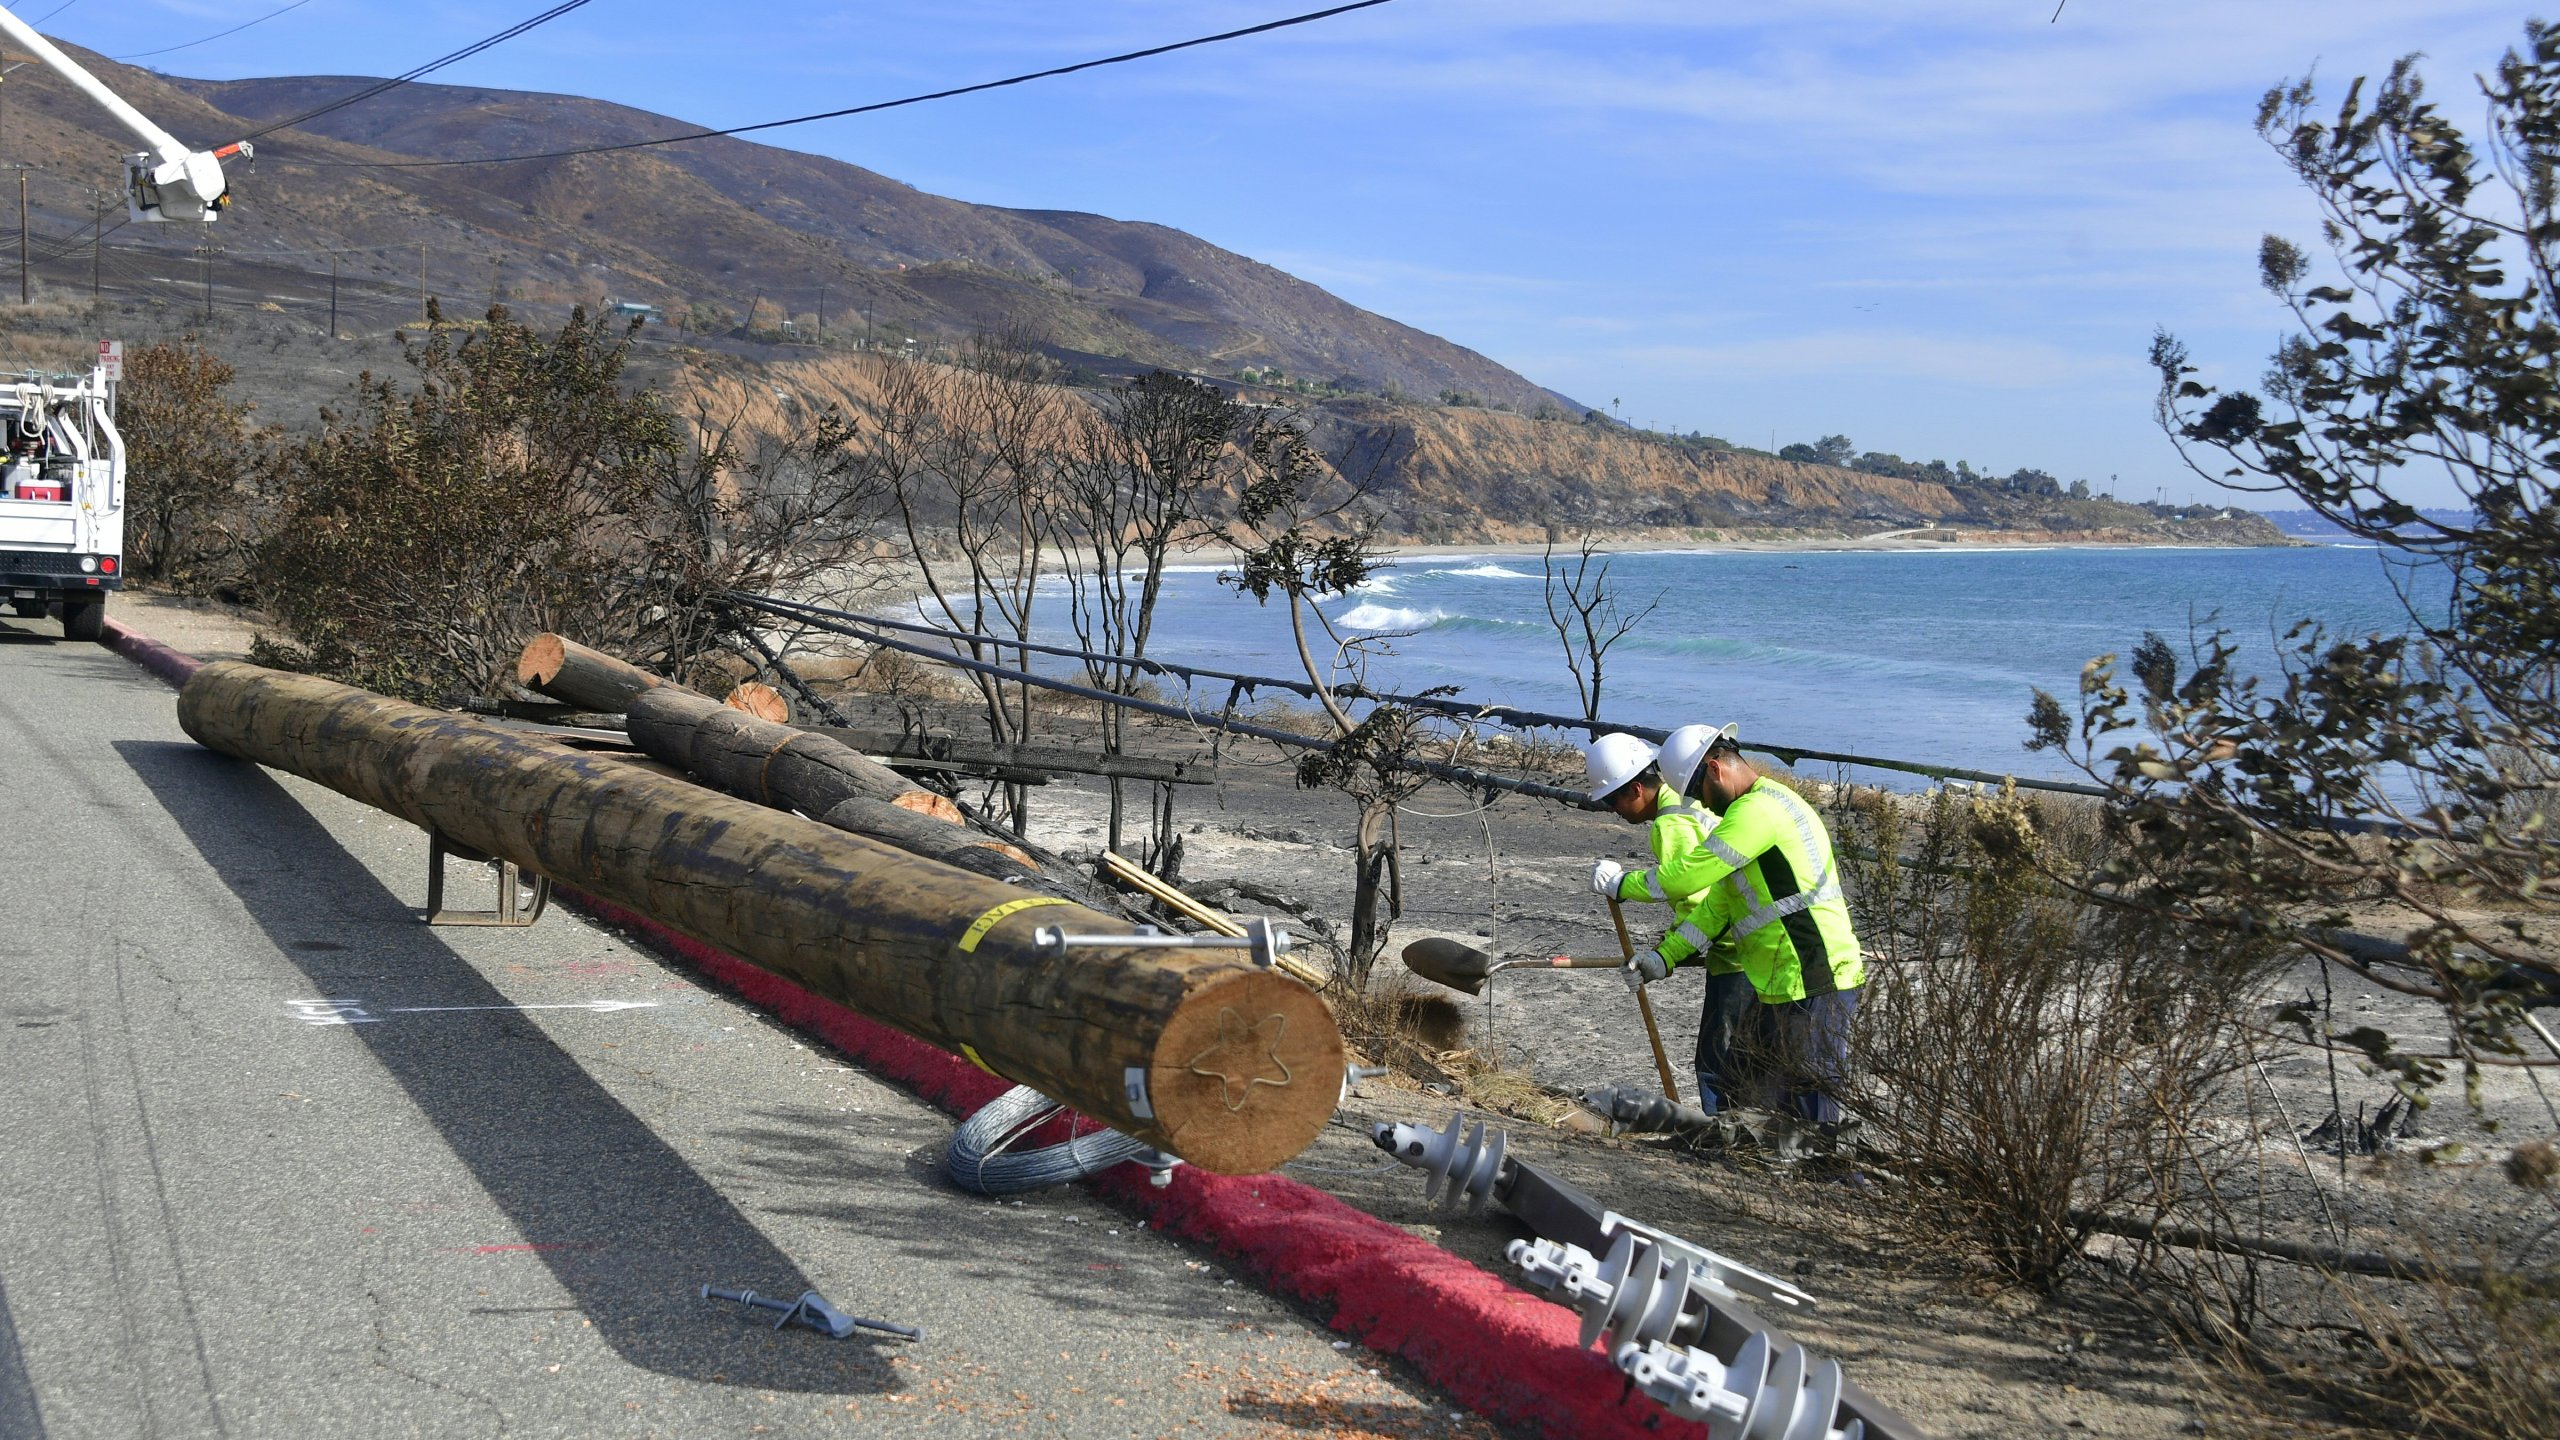 Contract workers help repair downed power lines along the Pacific Coast Highway in Malibu on Nov. 15, 2018. (Credit: Frederic J. Brown / AFP / Getty Images)